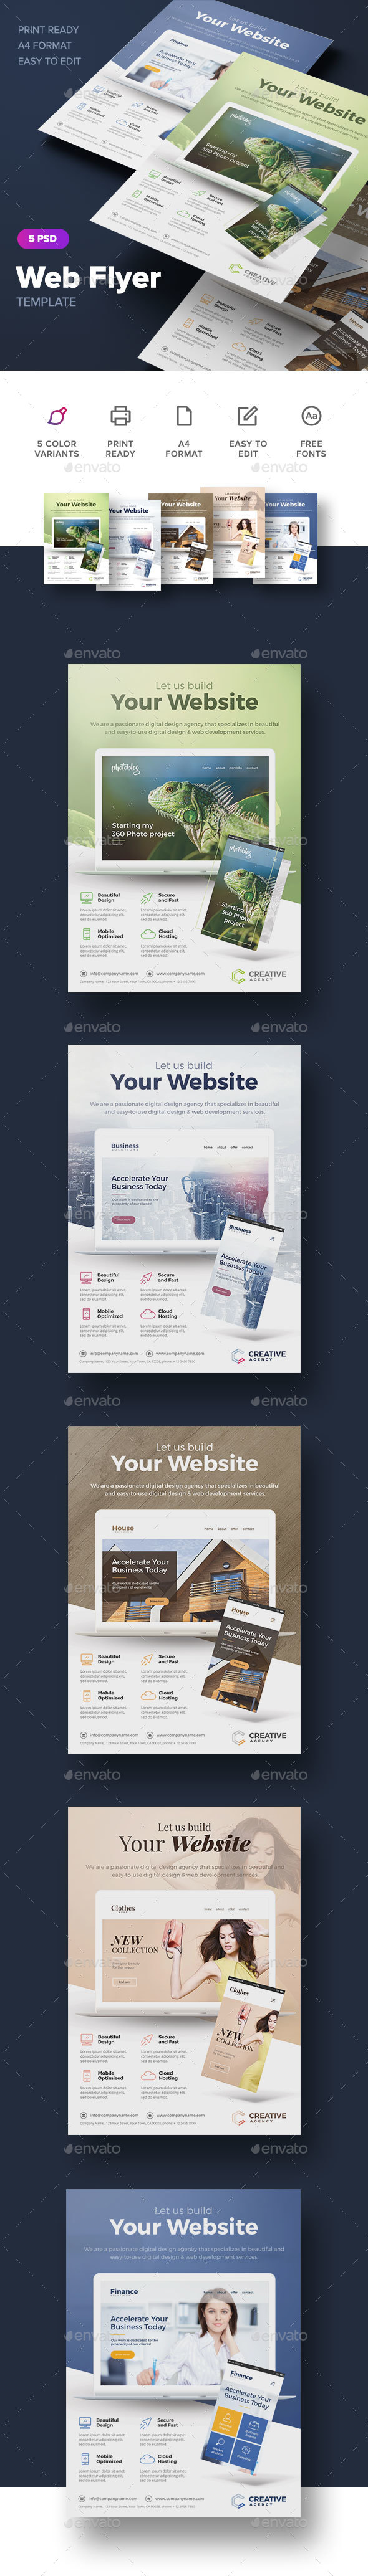 Web Flyer - Corporate Flyers